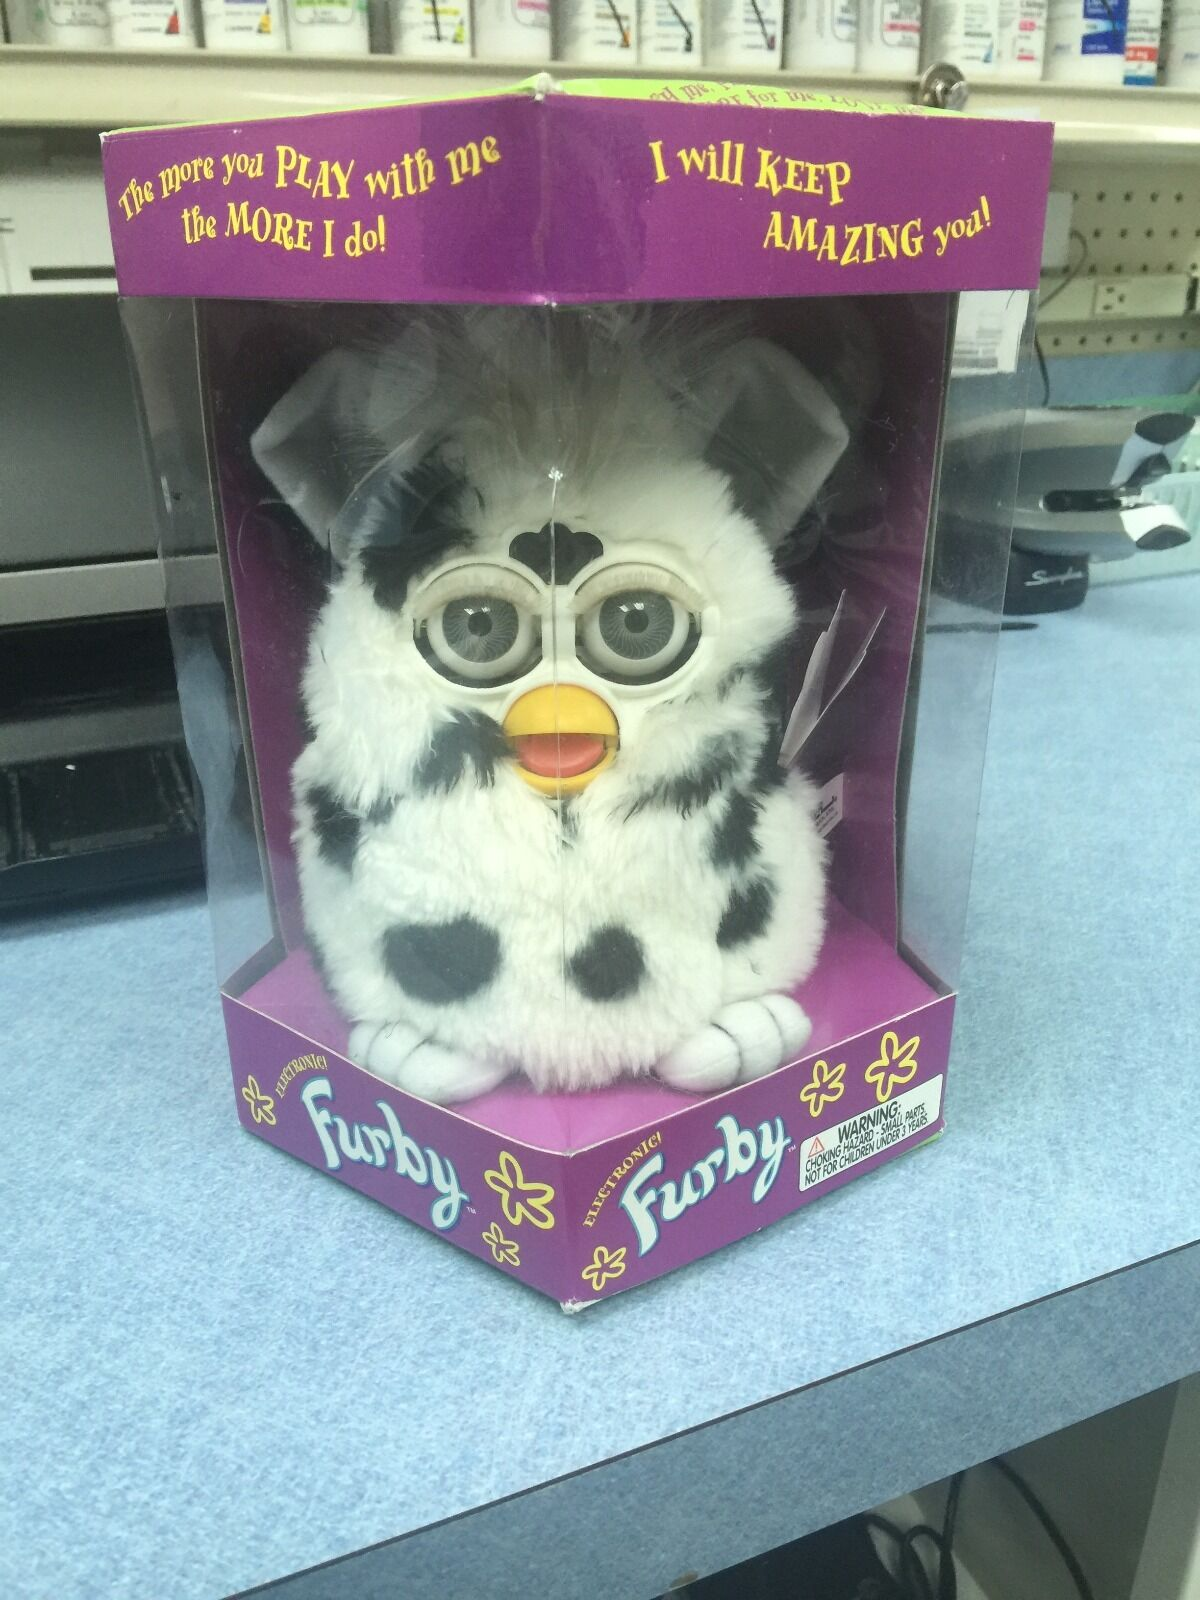 Furby 1st Edition Model 70-800 New in Box - Original 1998 Electronic